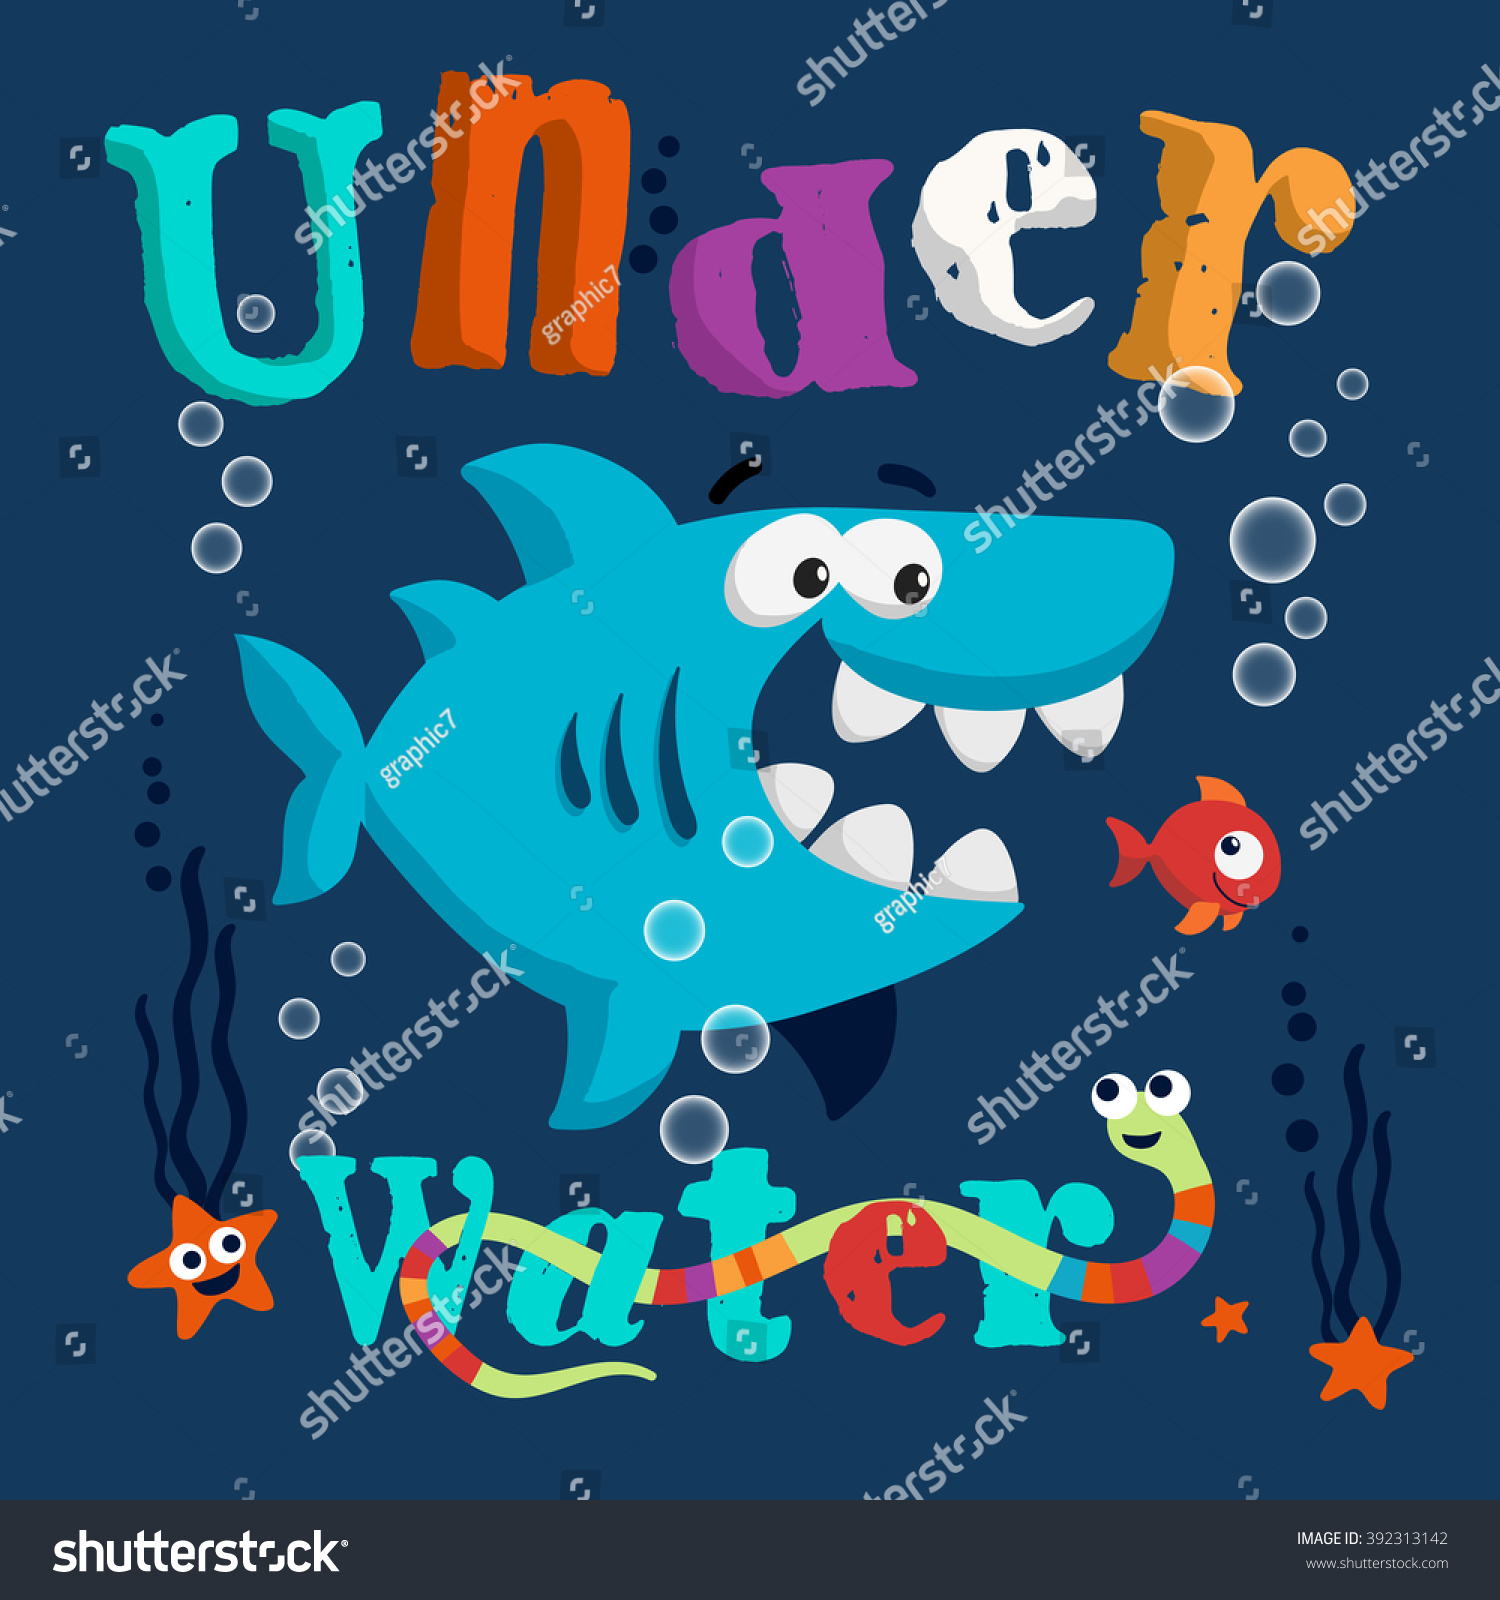 Uncategorized Shark Images To Print funny shark typo print design idea stock vector 392313142 with for jersey fabrics slogan and typography